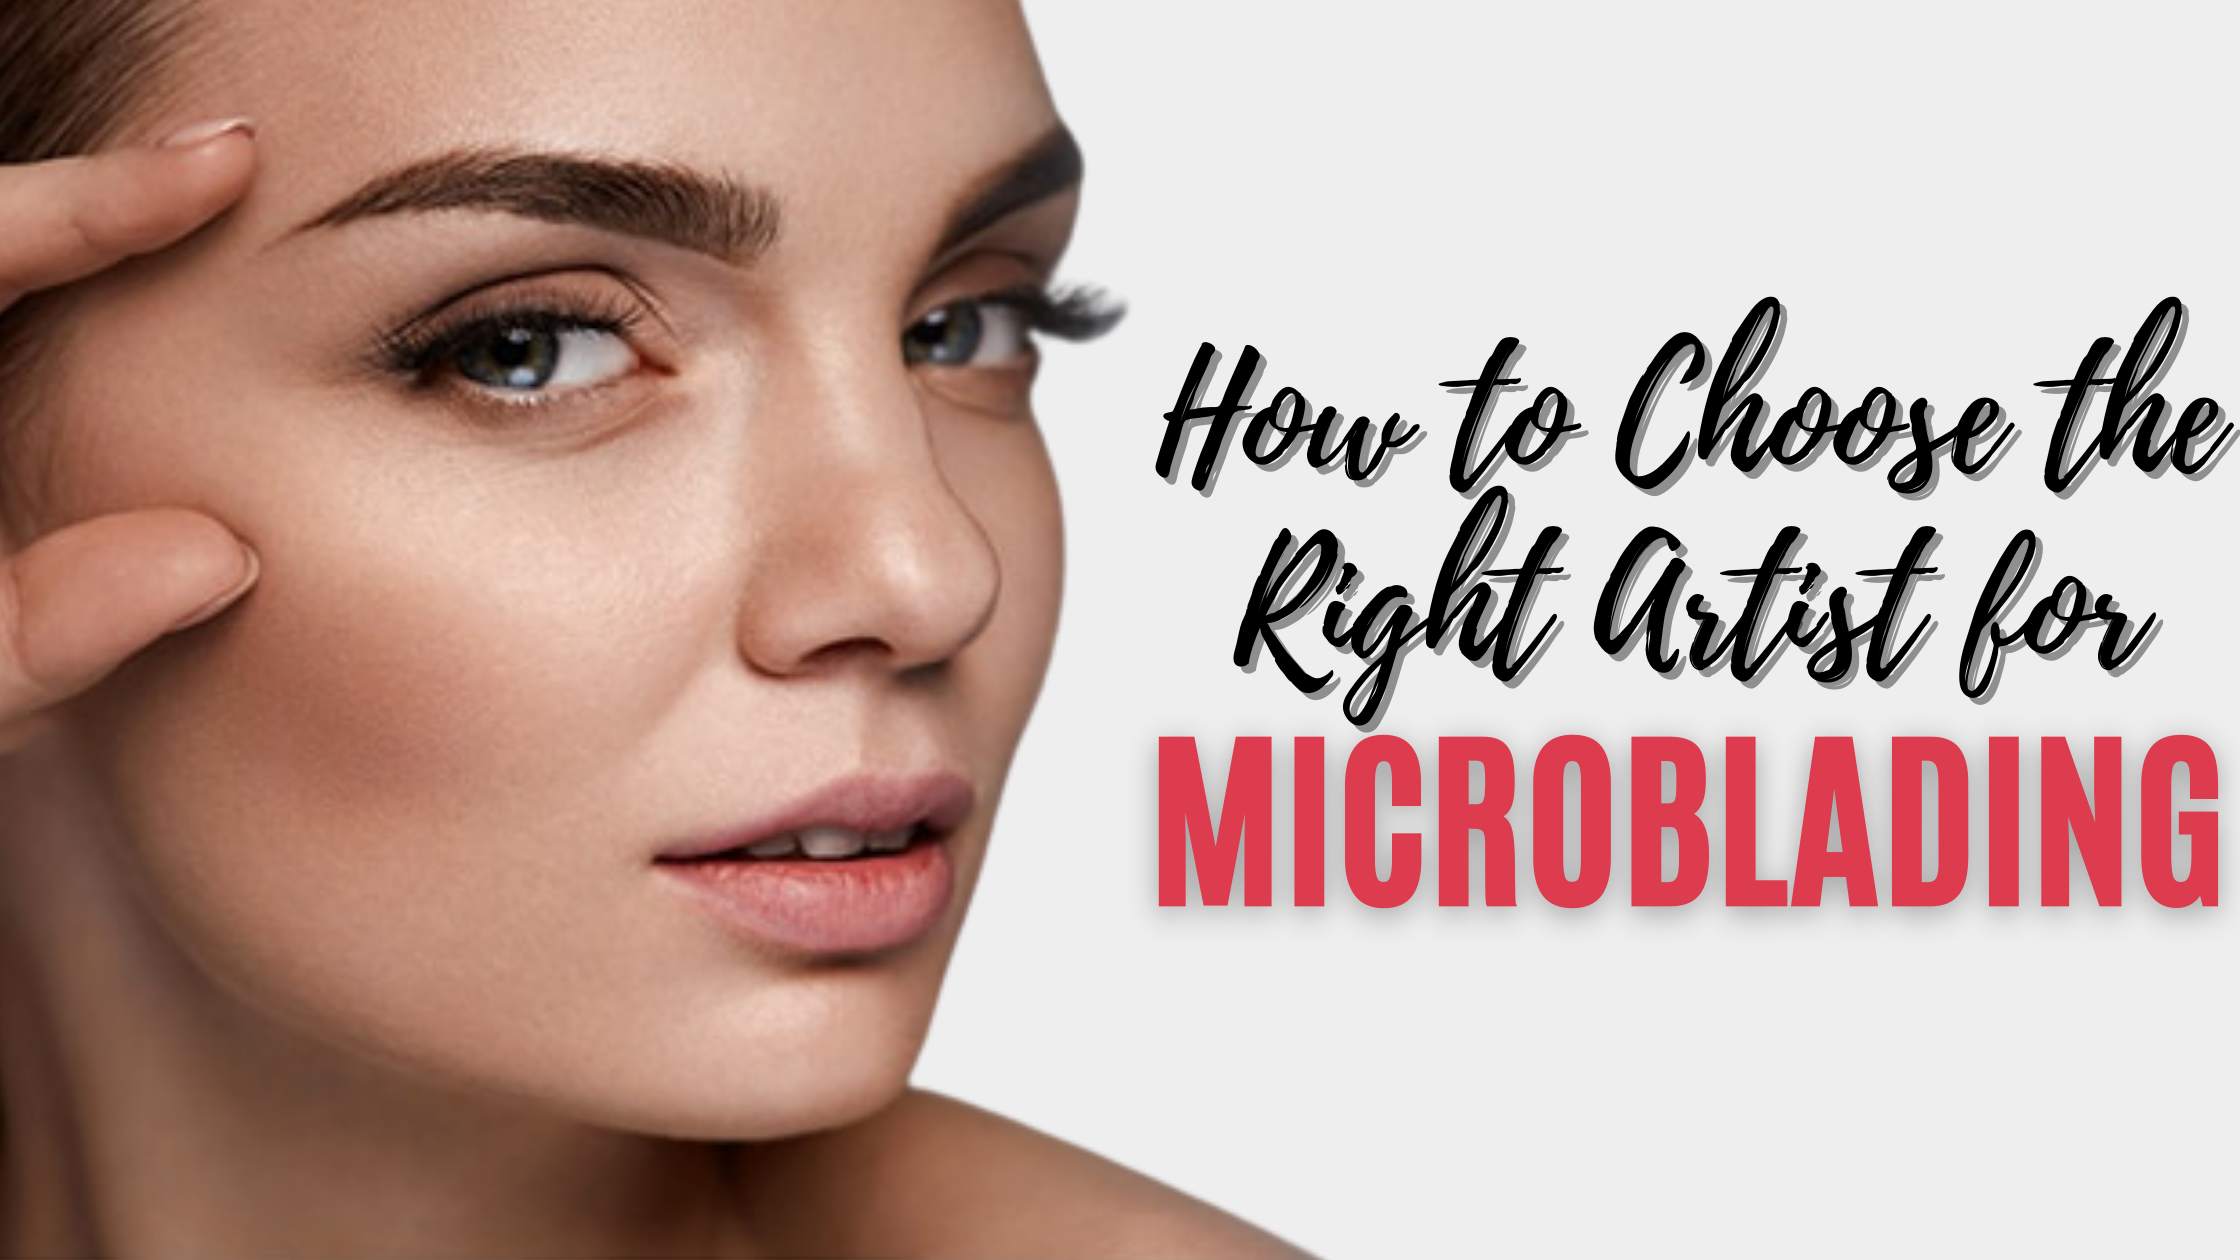 how to choose the right artist for microblading